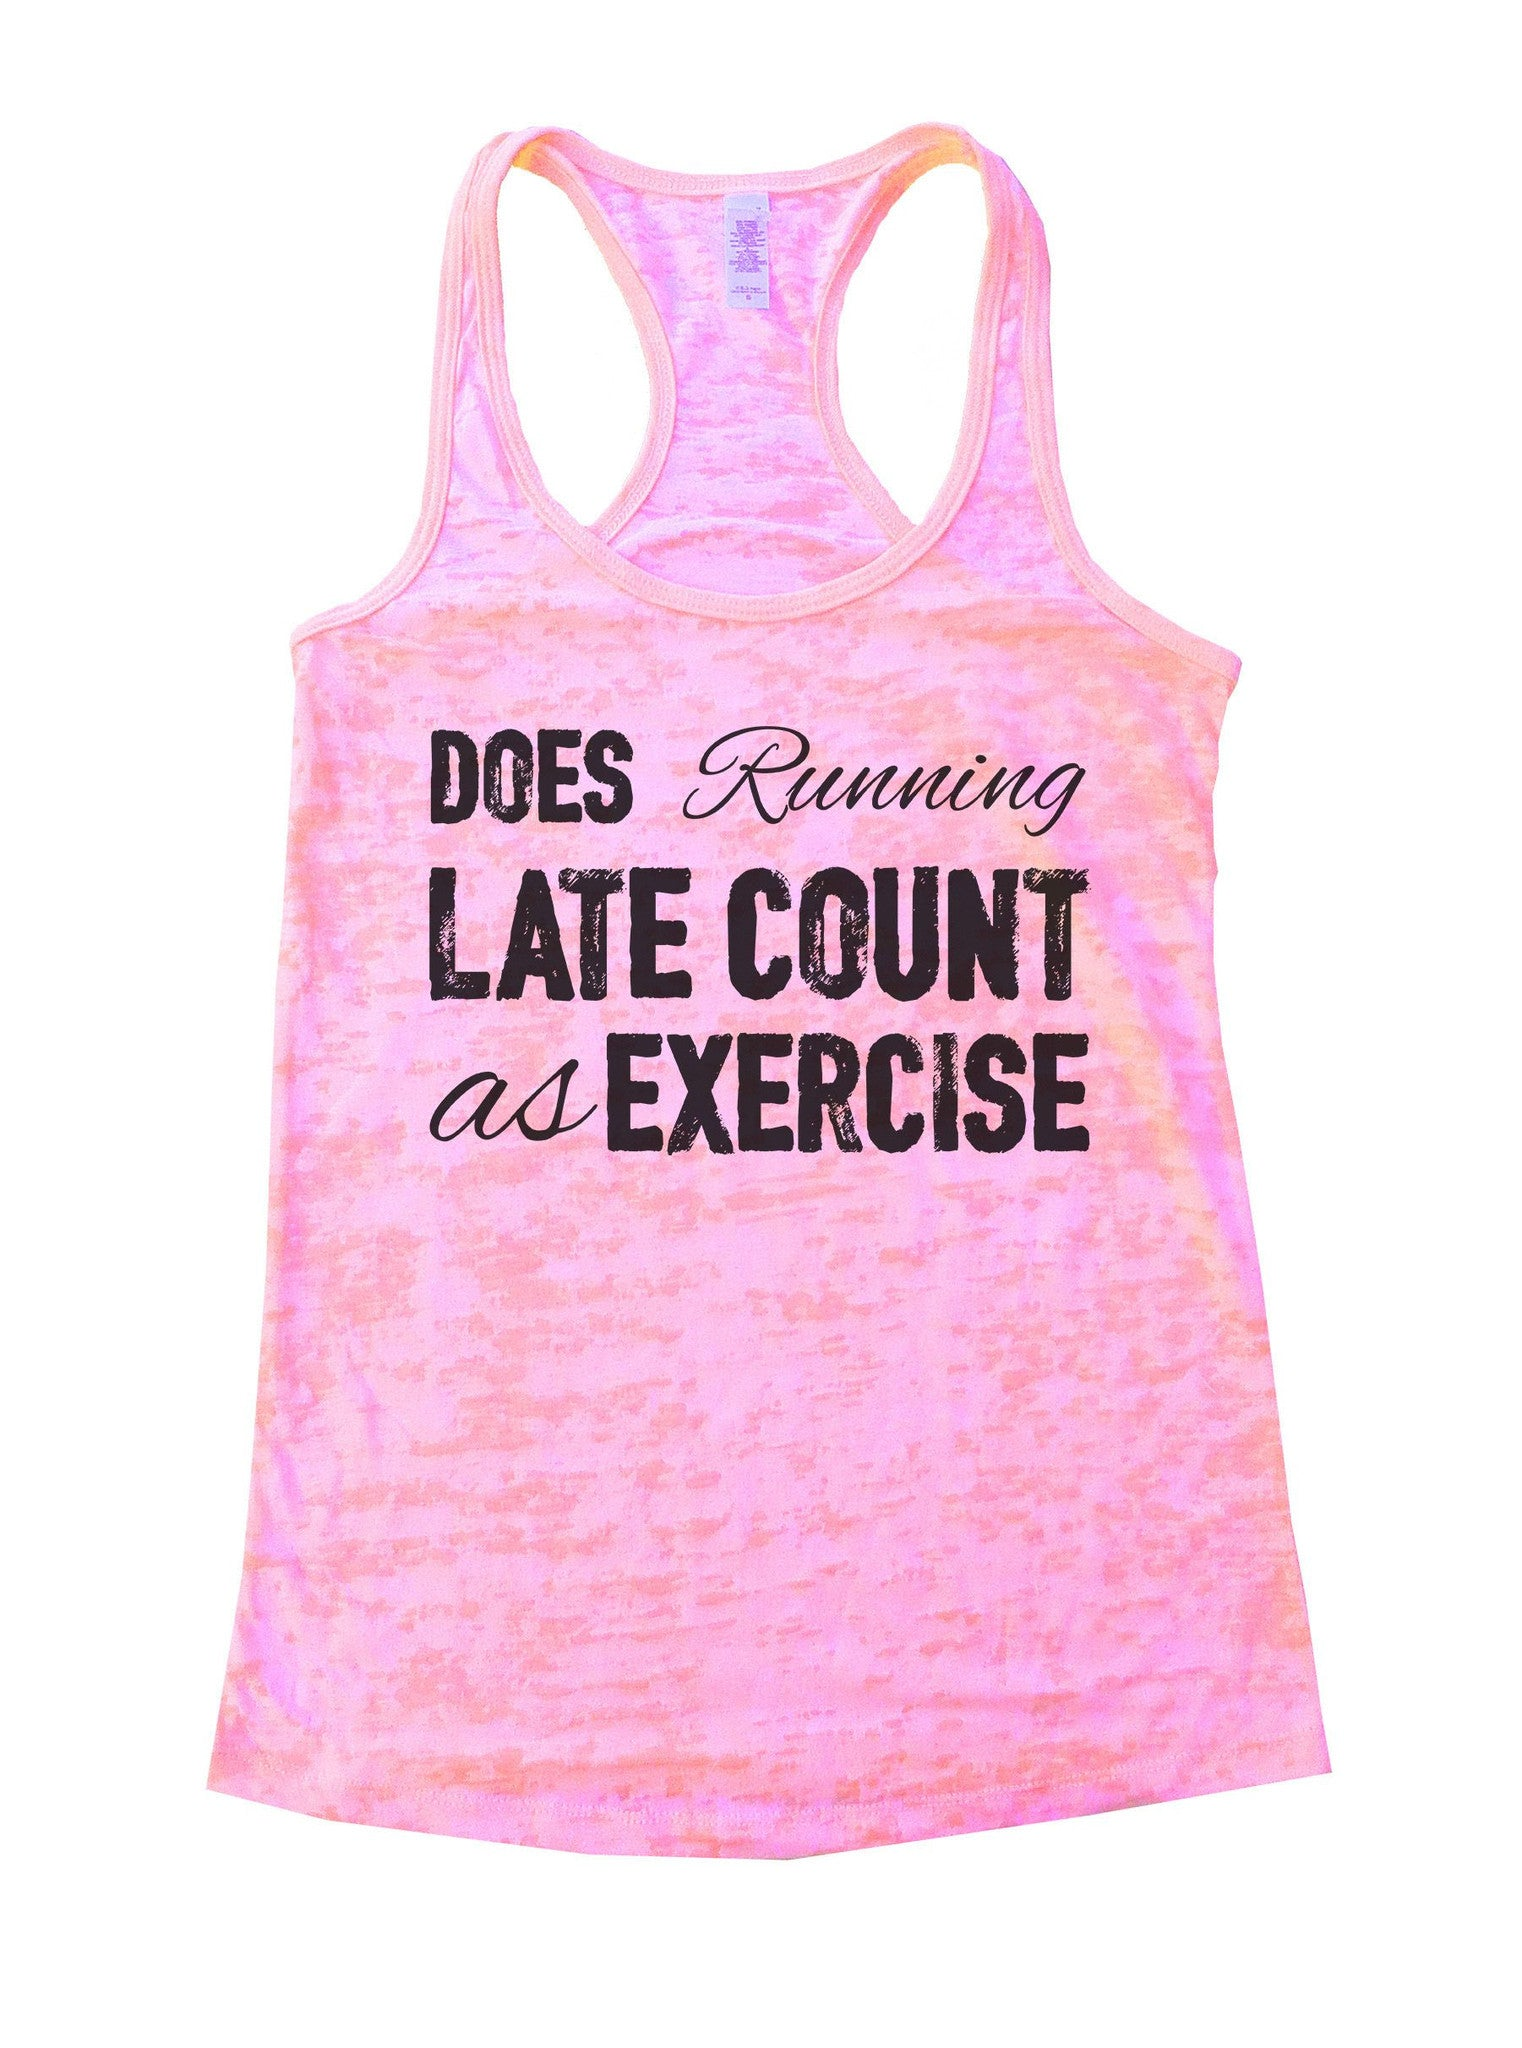 Does Running Late Count As Exercise Burnout Tank Top By BurnoutTankTops.com - 805 - Funny Shirts Tank Tops Burnouts and Triblends  - 1